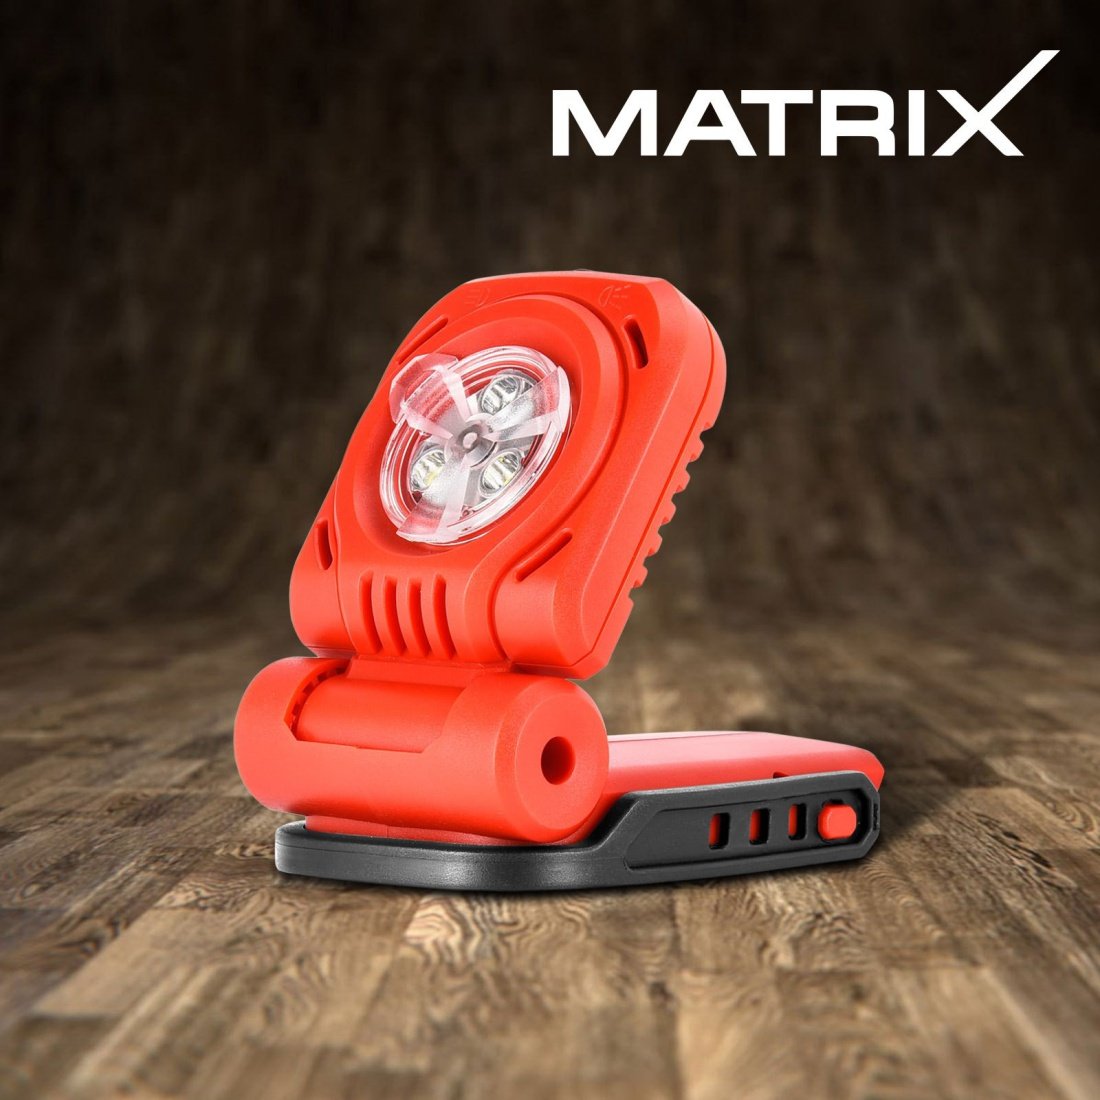 Matrix Cordless Torch Work Light Flashlight 20V Lithium Electric Skin Only